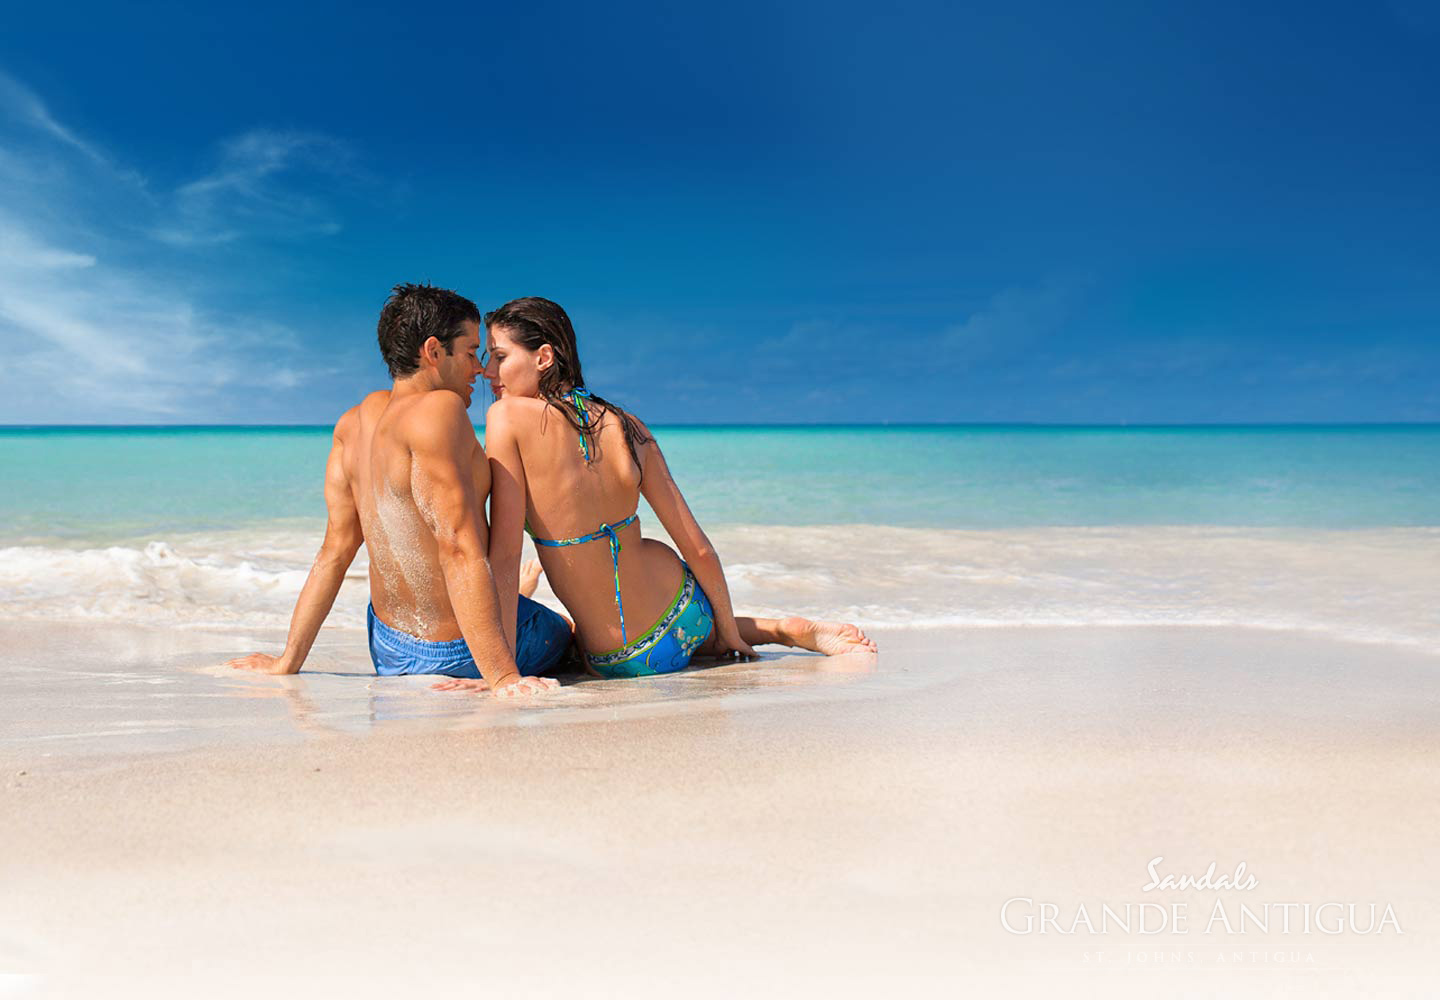 Sandals Grande Antigua Is The Most Romantic Resort In